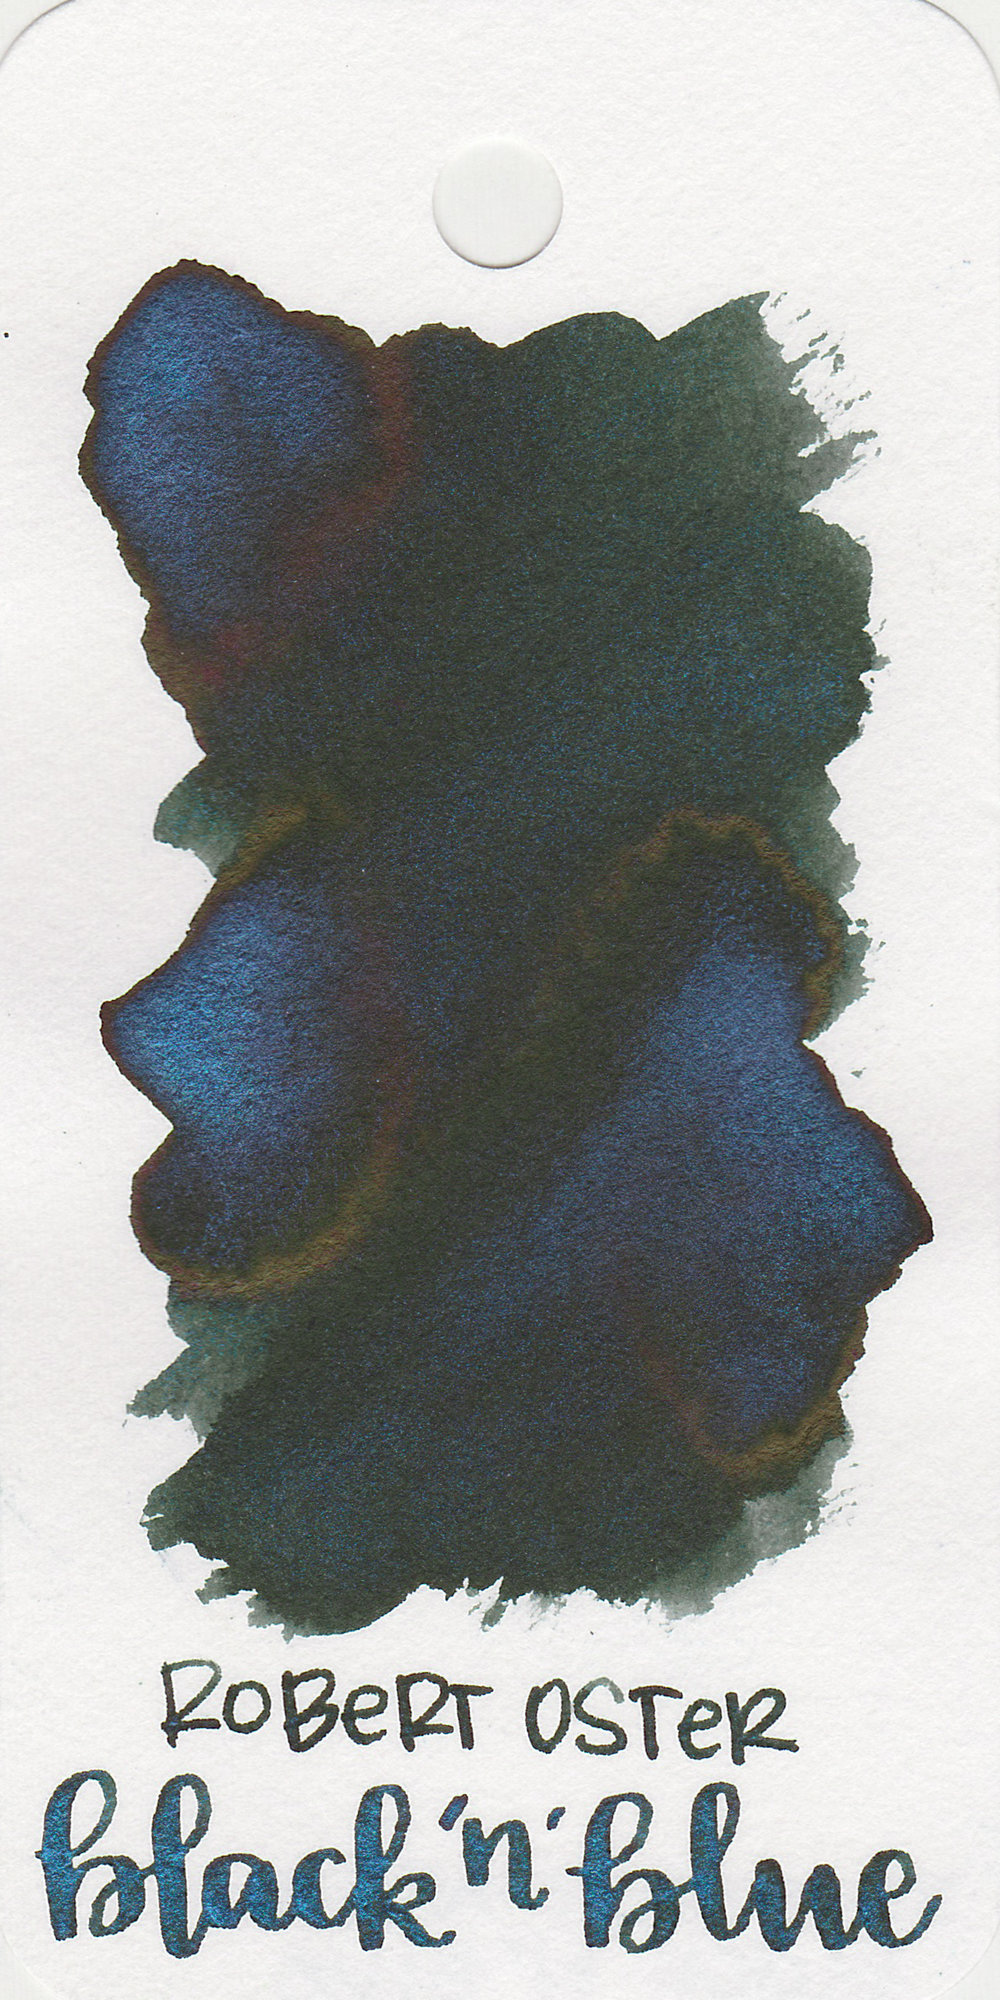 The color: - Black 'N' Blue is a dark green-black with bright blue shimmer.